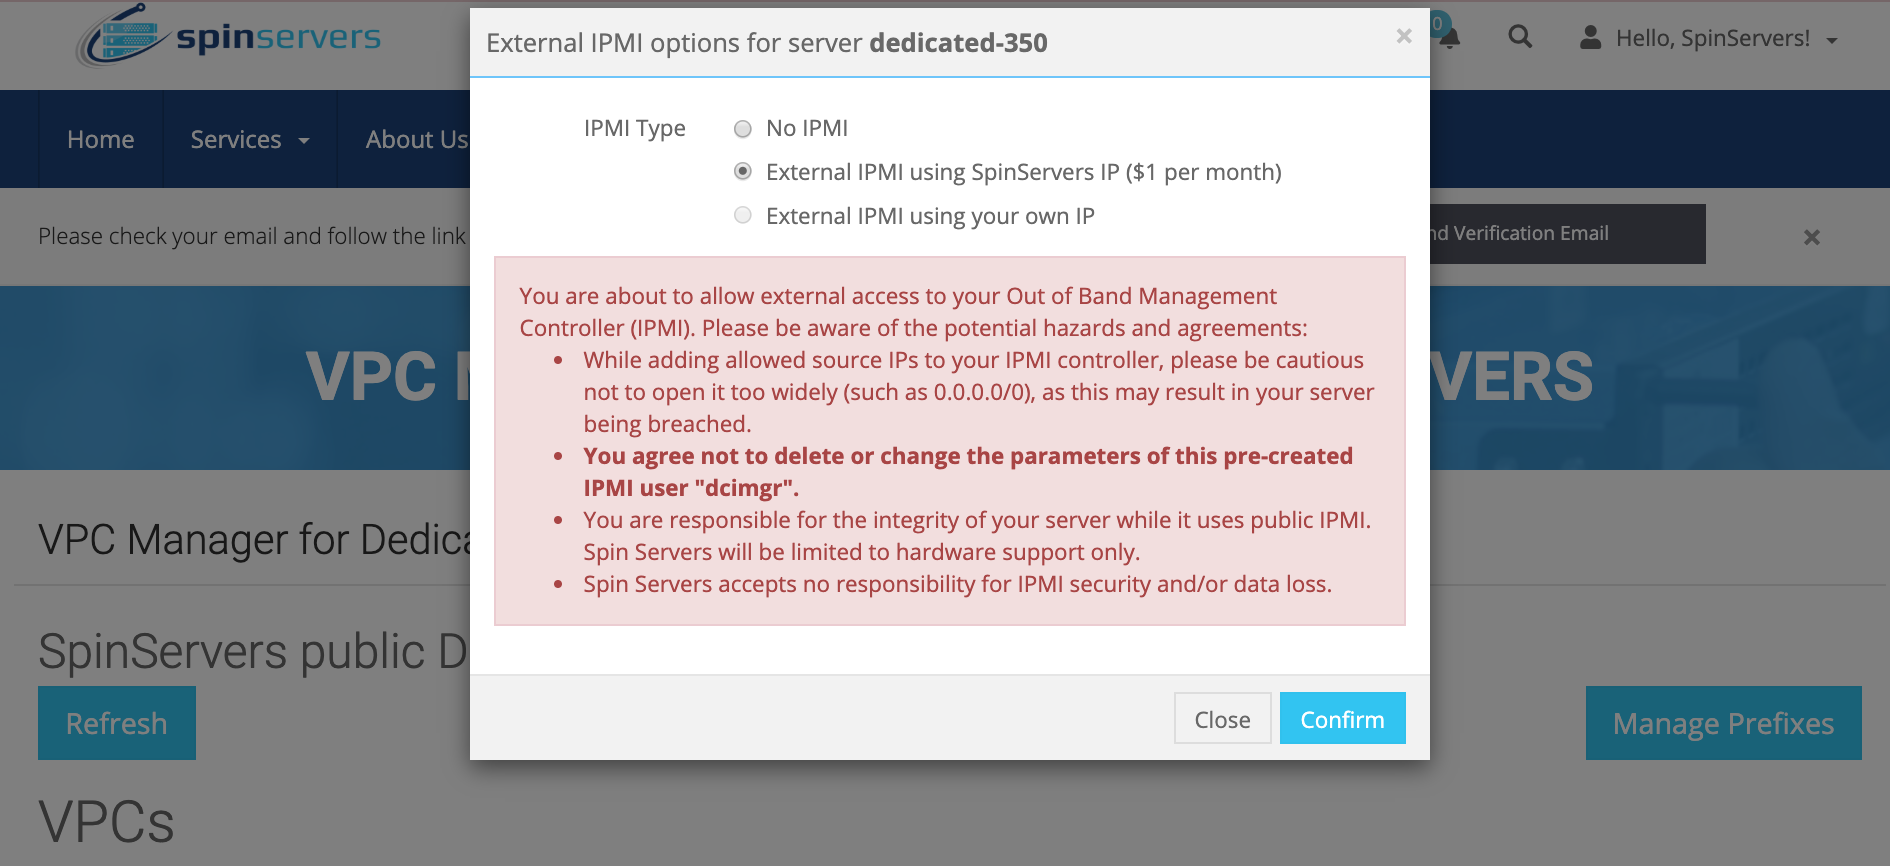 SpinServers Change IPMI Access Type